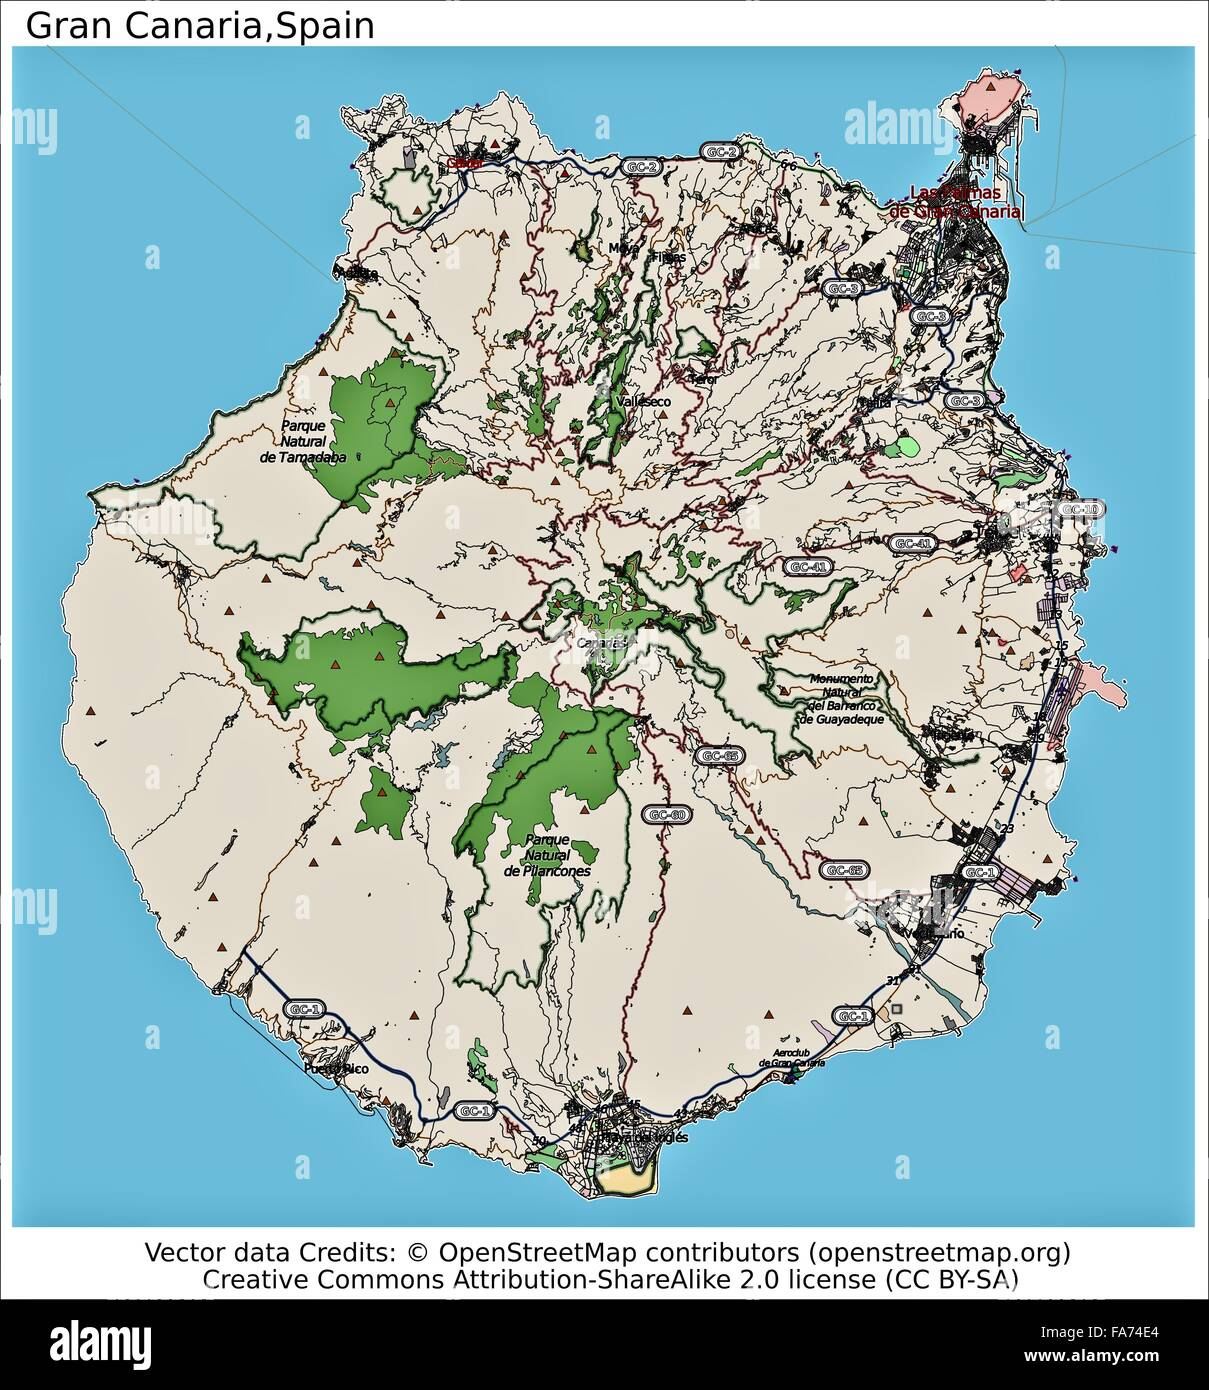 Gran Canaria Spain location map Stock Photo 92355596 Alamy